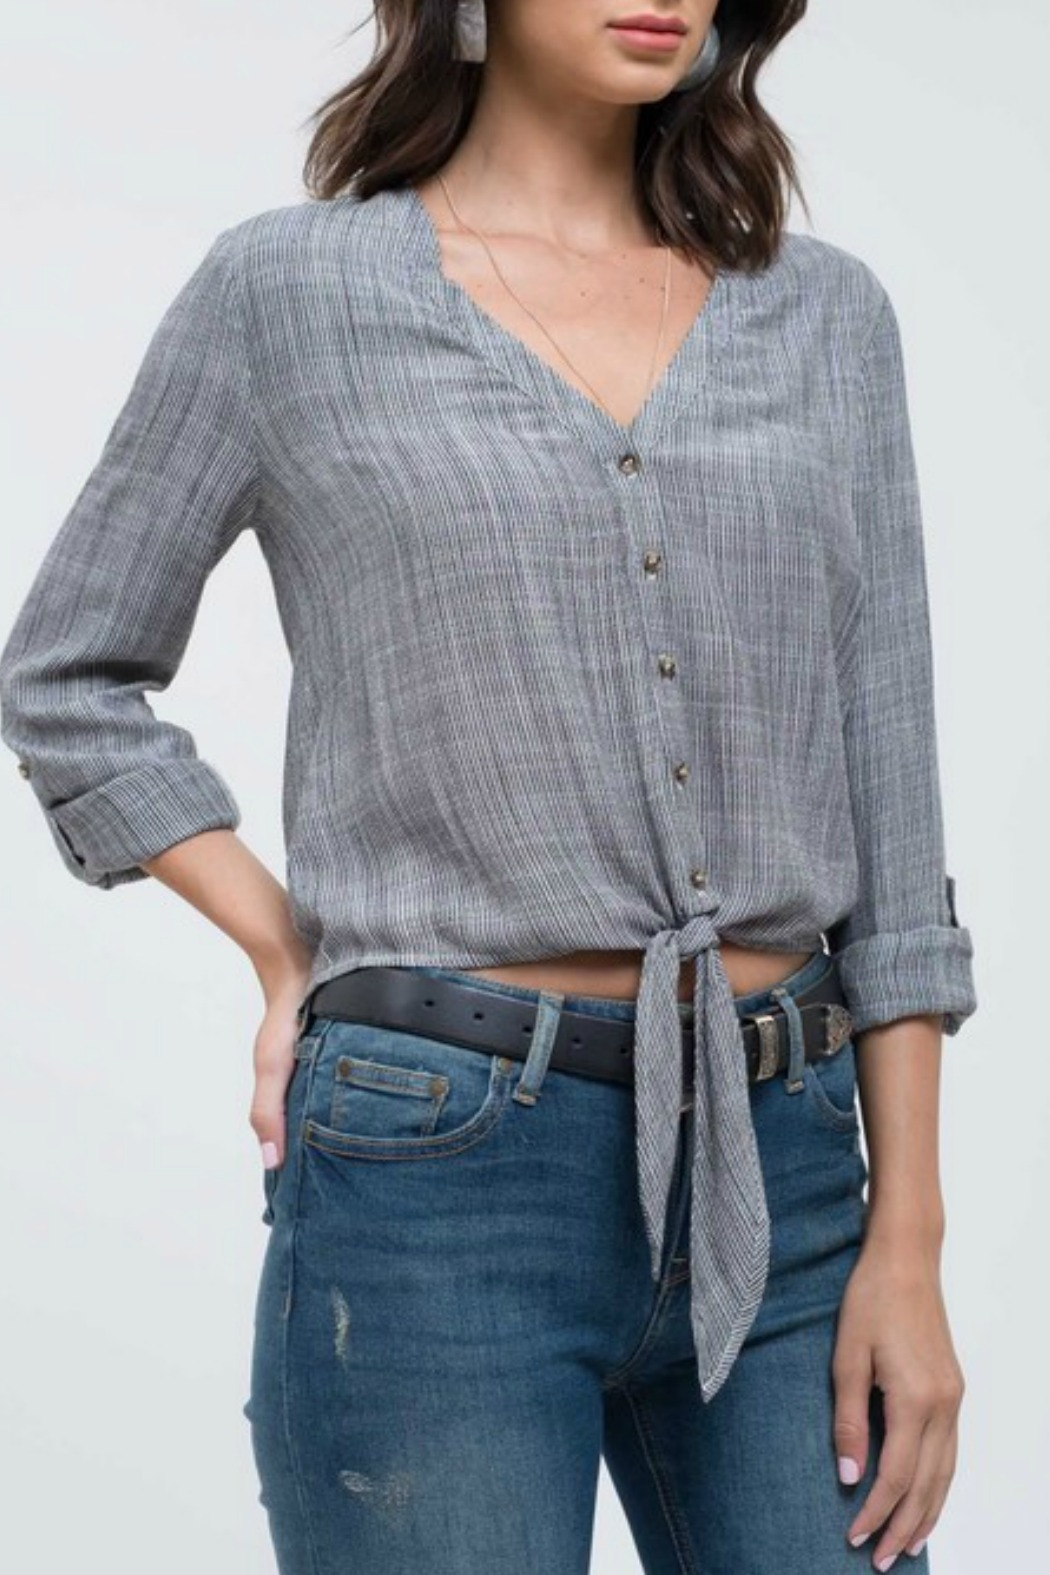 Blu Pepper Tie Front Blouse - Main Image